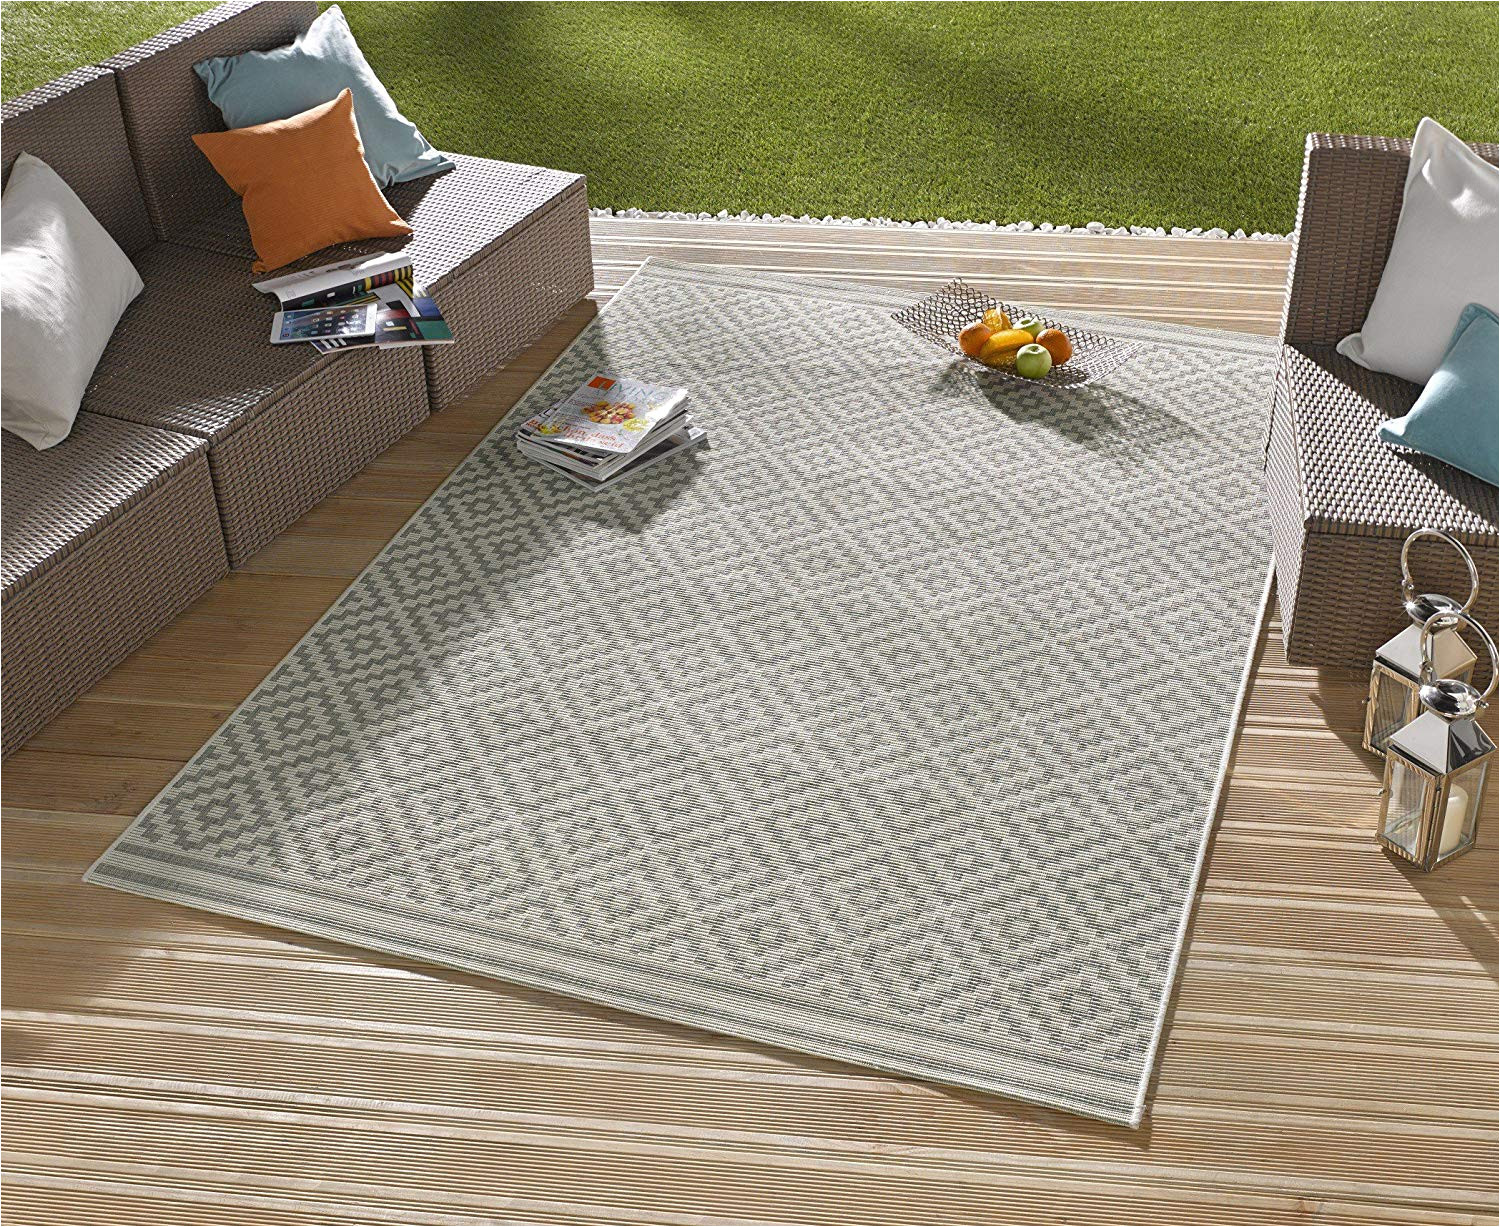 amazon de in outdoor design teppich terrasse wintergarten 160 x 230 cm raute grau creme od 4